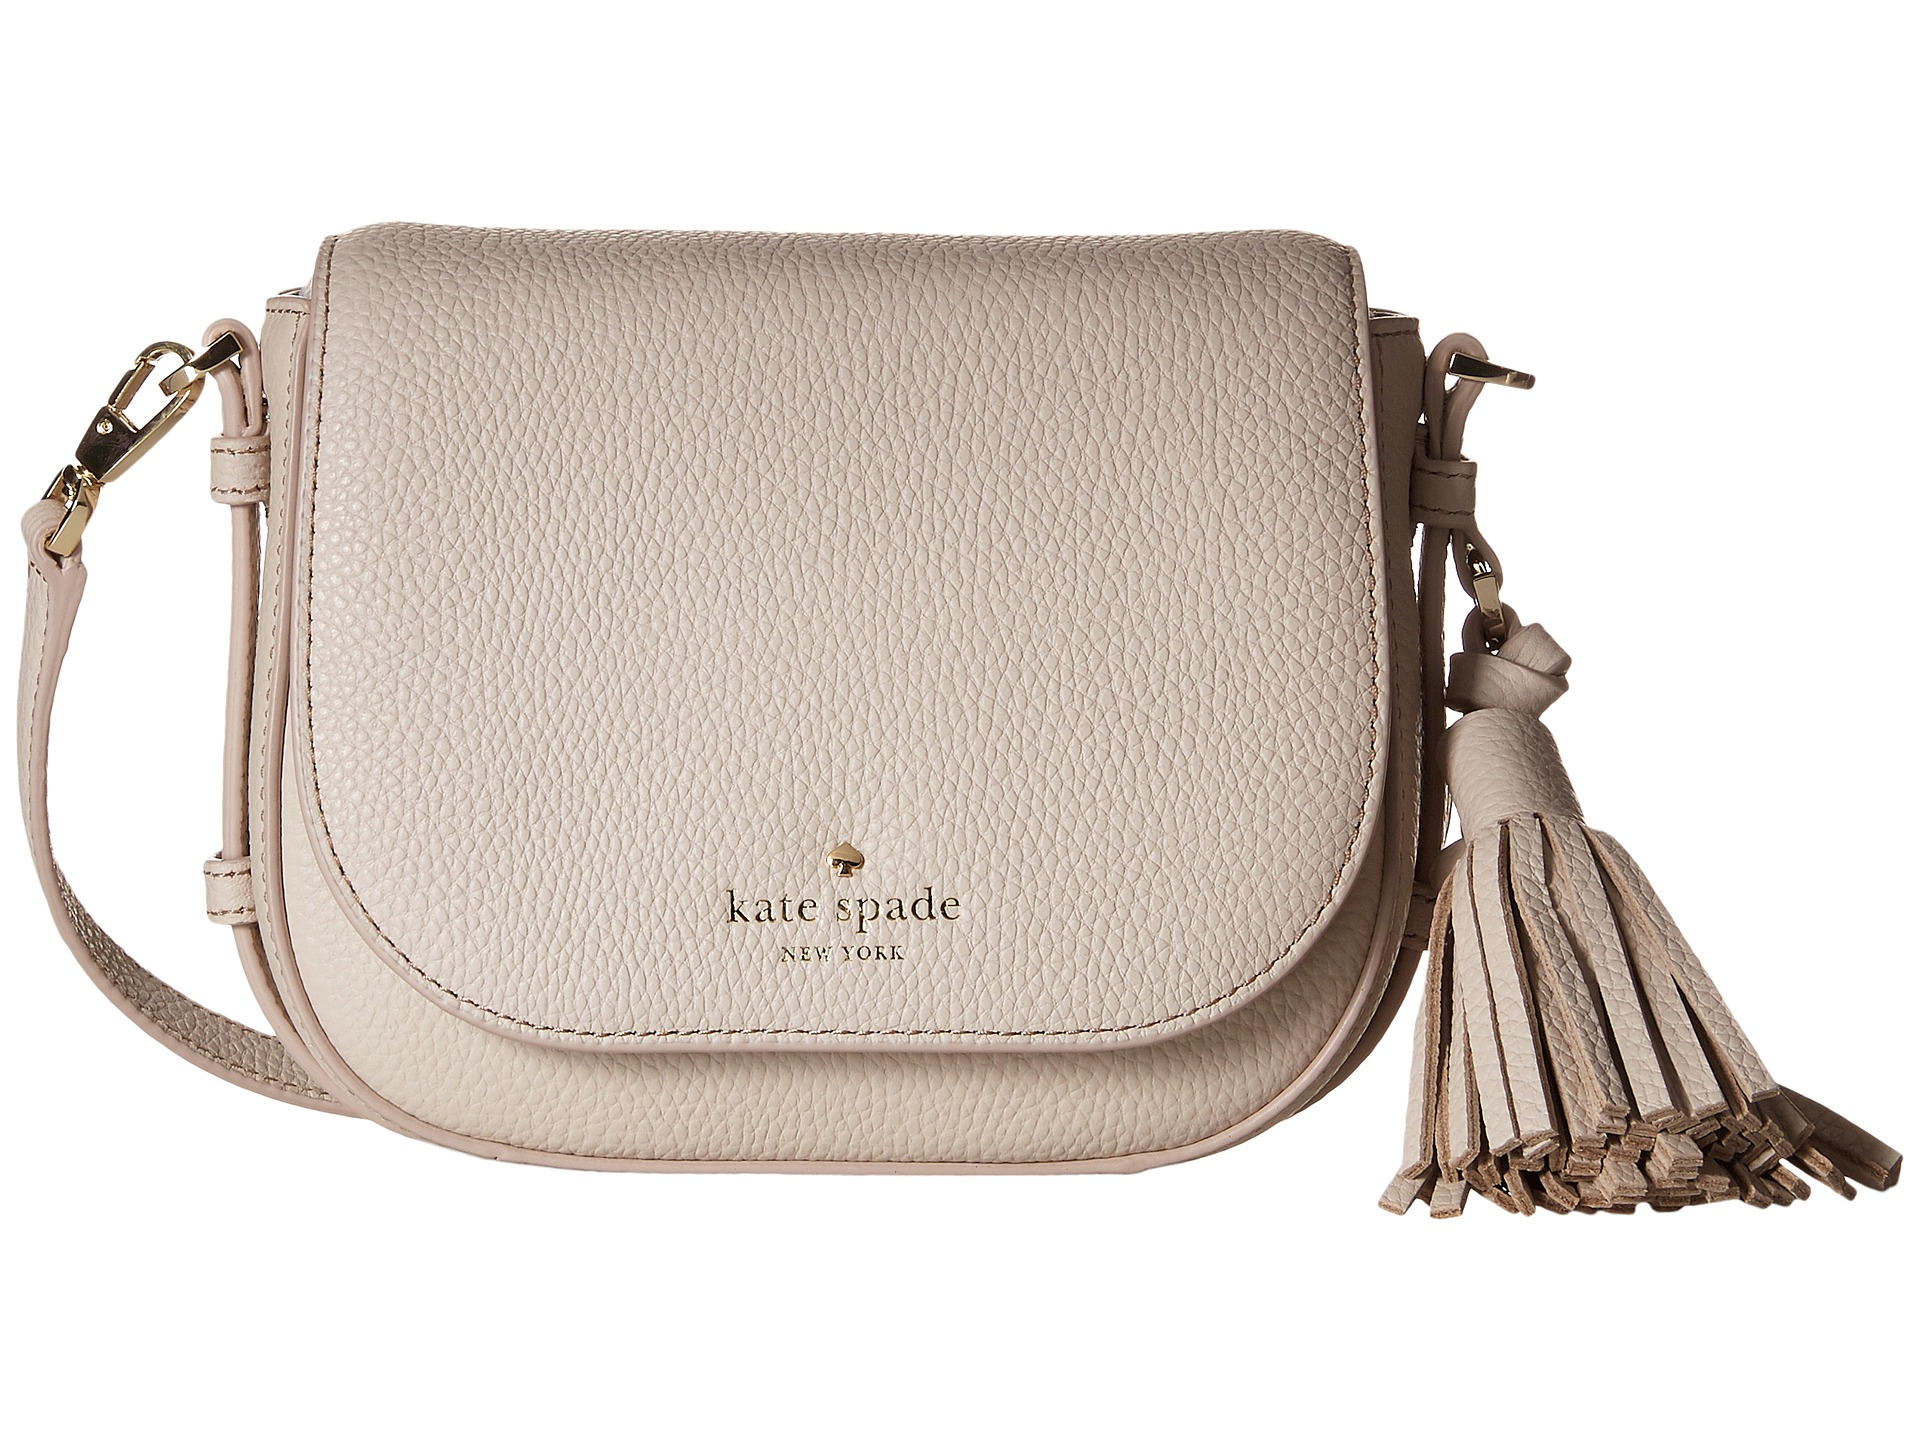 7b2740a4b Kate Spade Orchard Street Small Penelope in Brown - Lyst